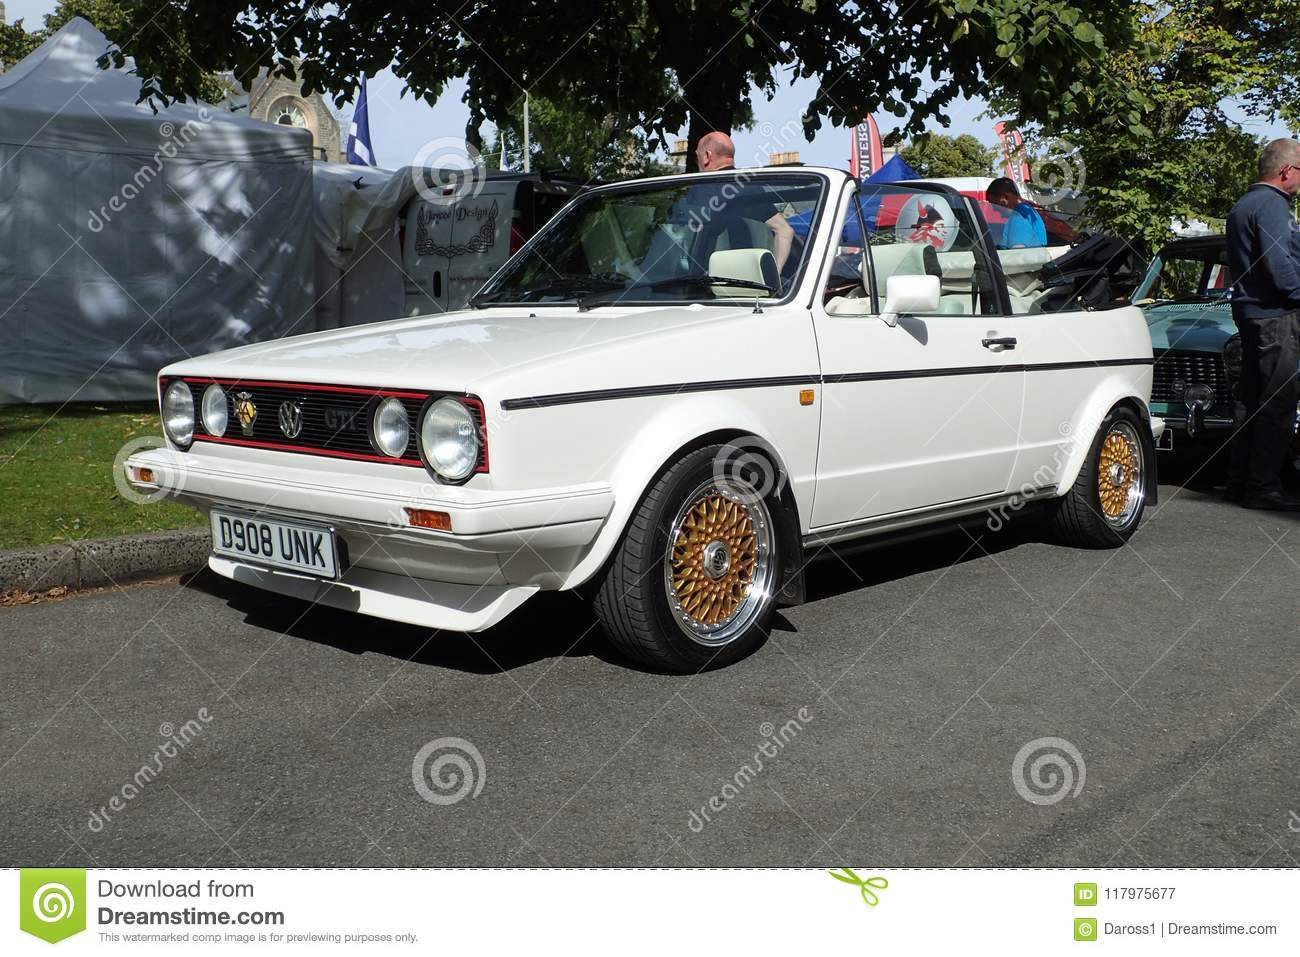 vw mk1 golf cabriolet gti in alpine white editorial photography image of volkswagen. Black Bedroom Furniture Sets. Home Design Ideas